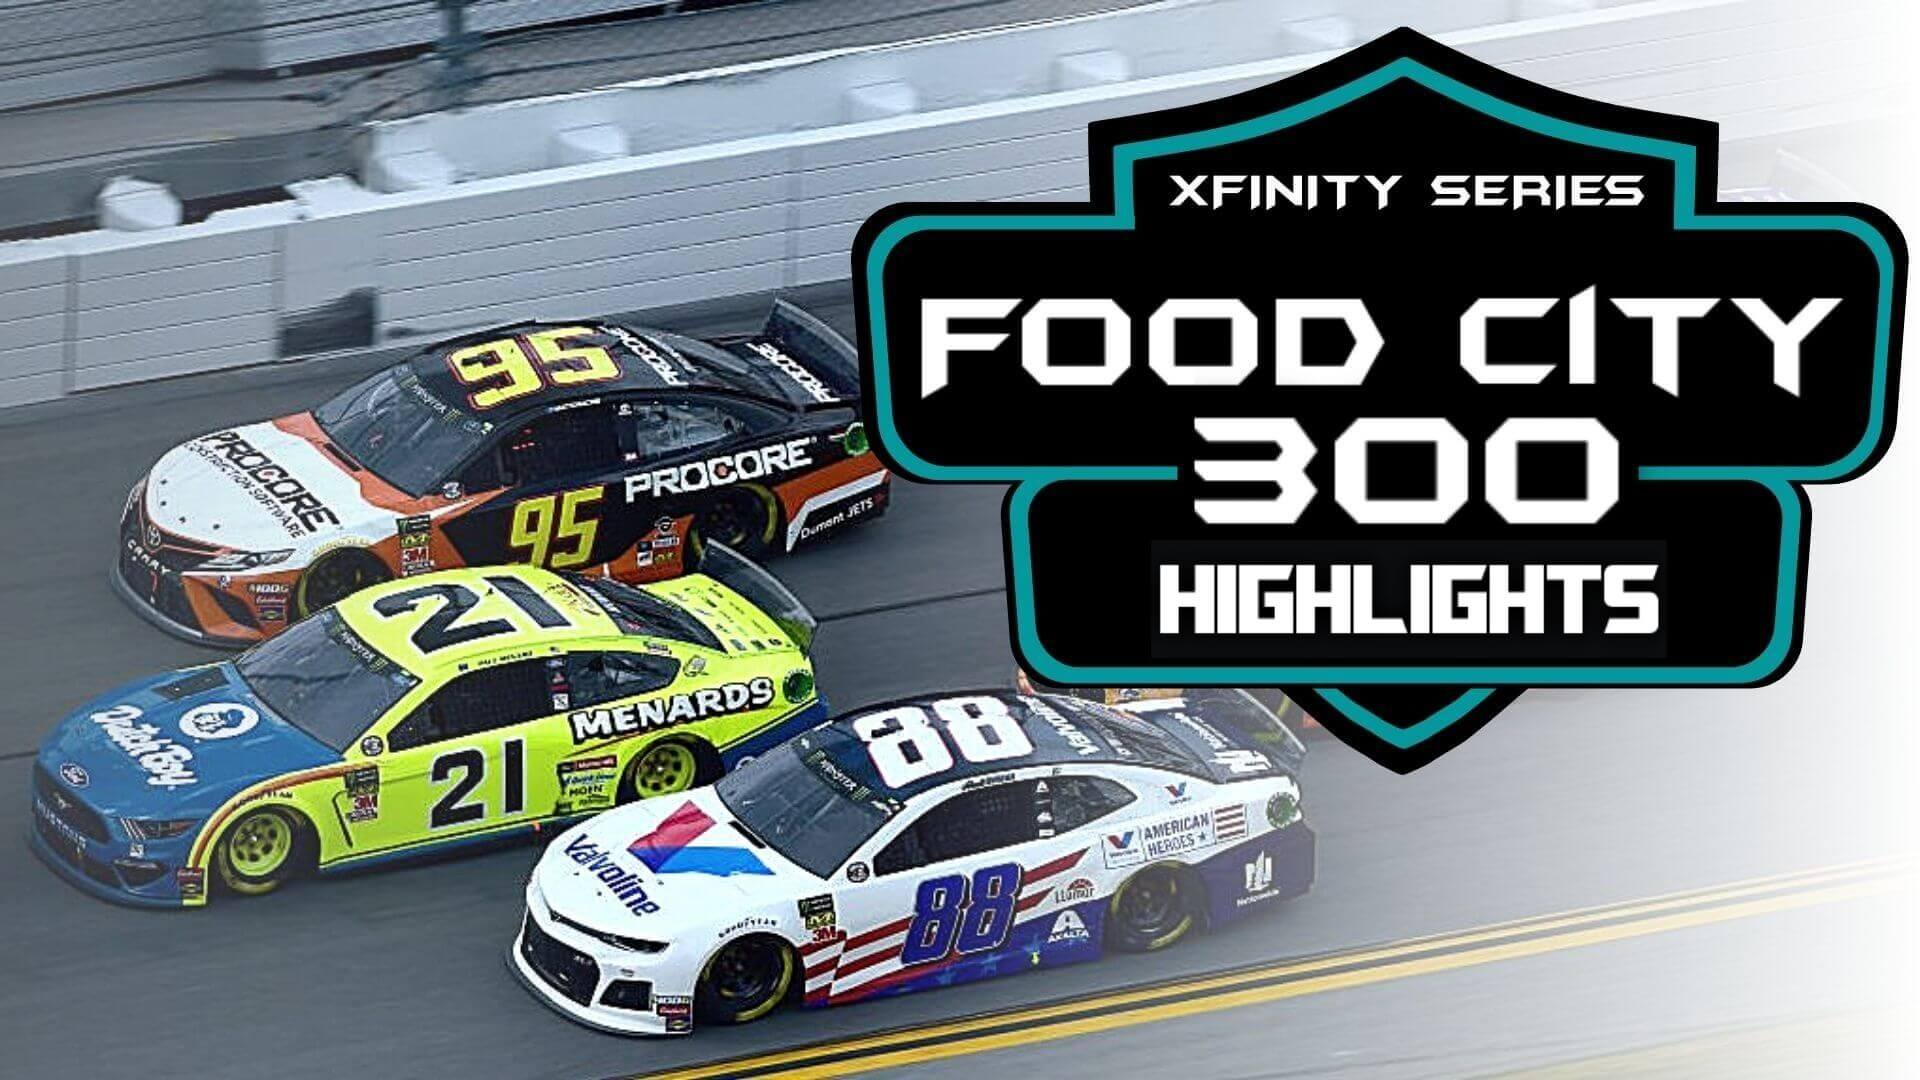 Food City 300 Highlights 2020 Nascar Xfinity Series